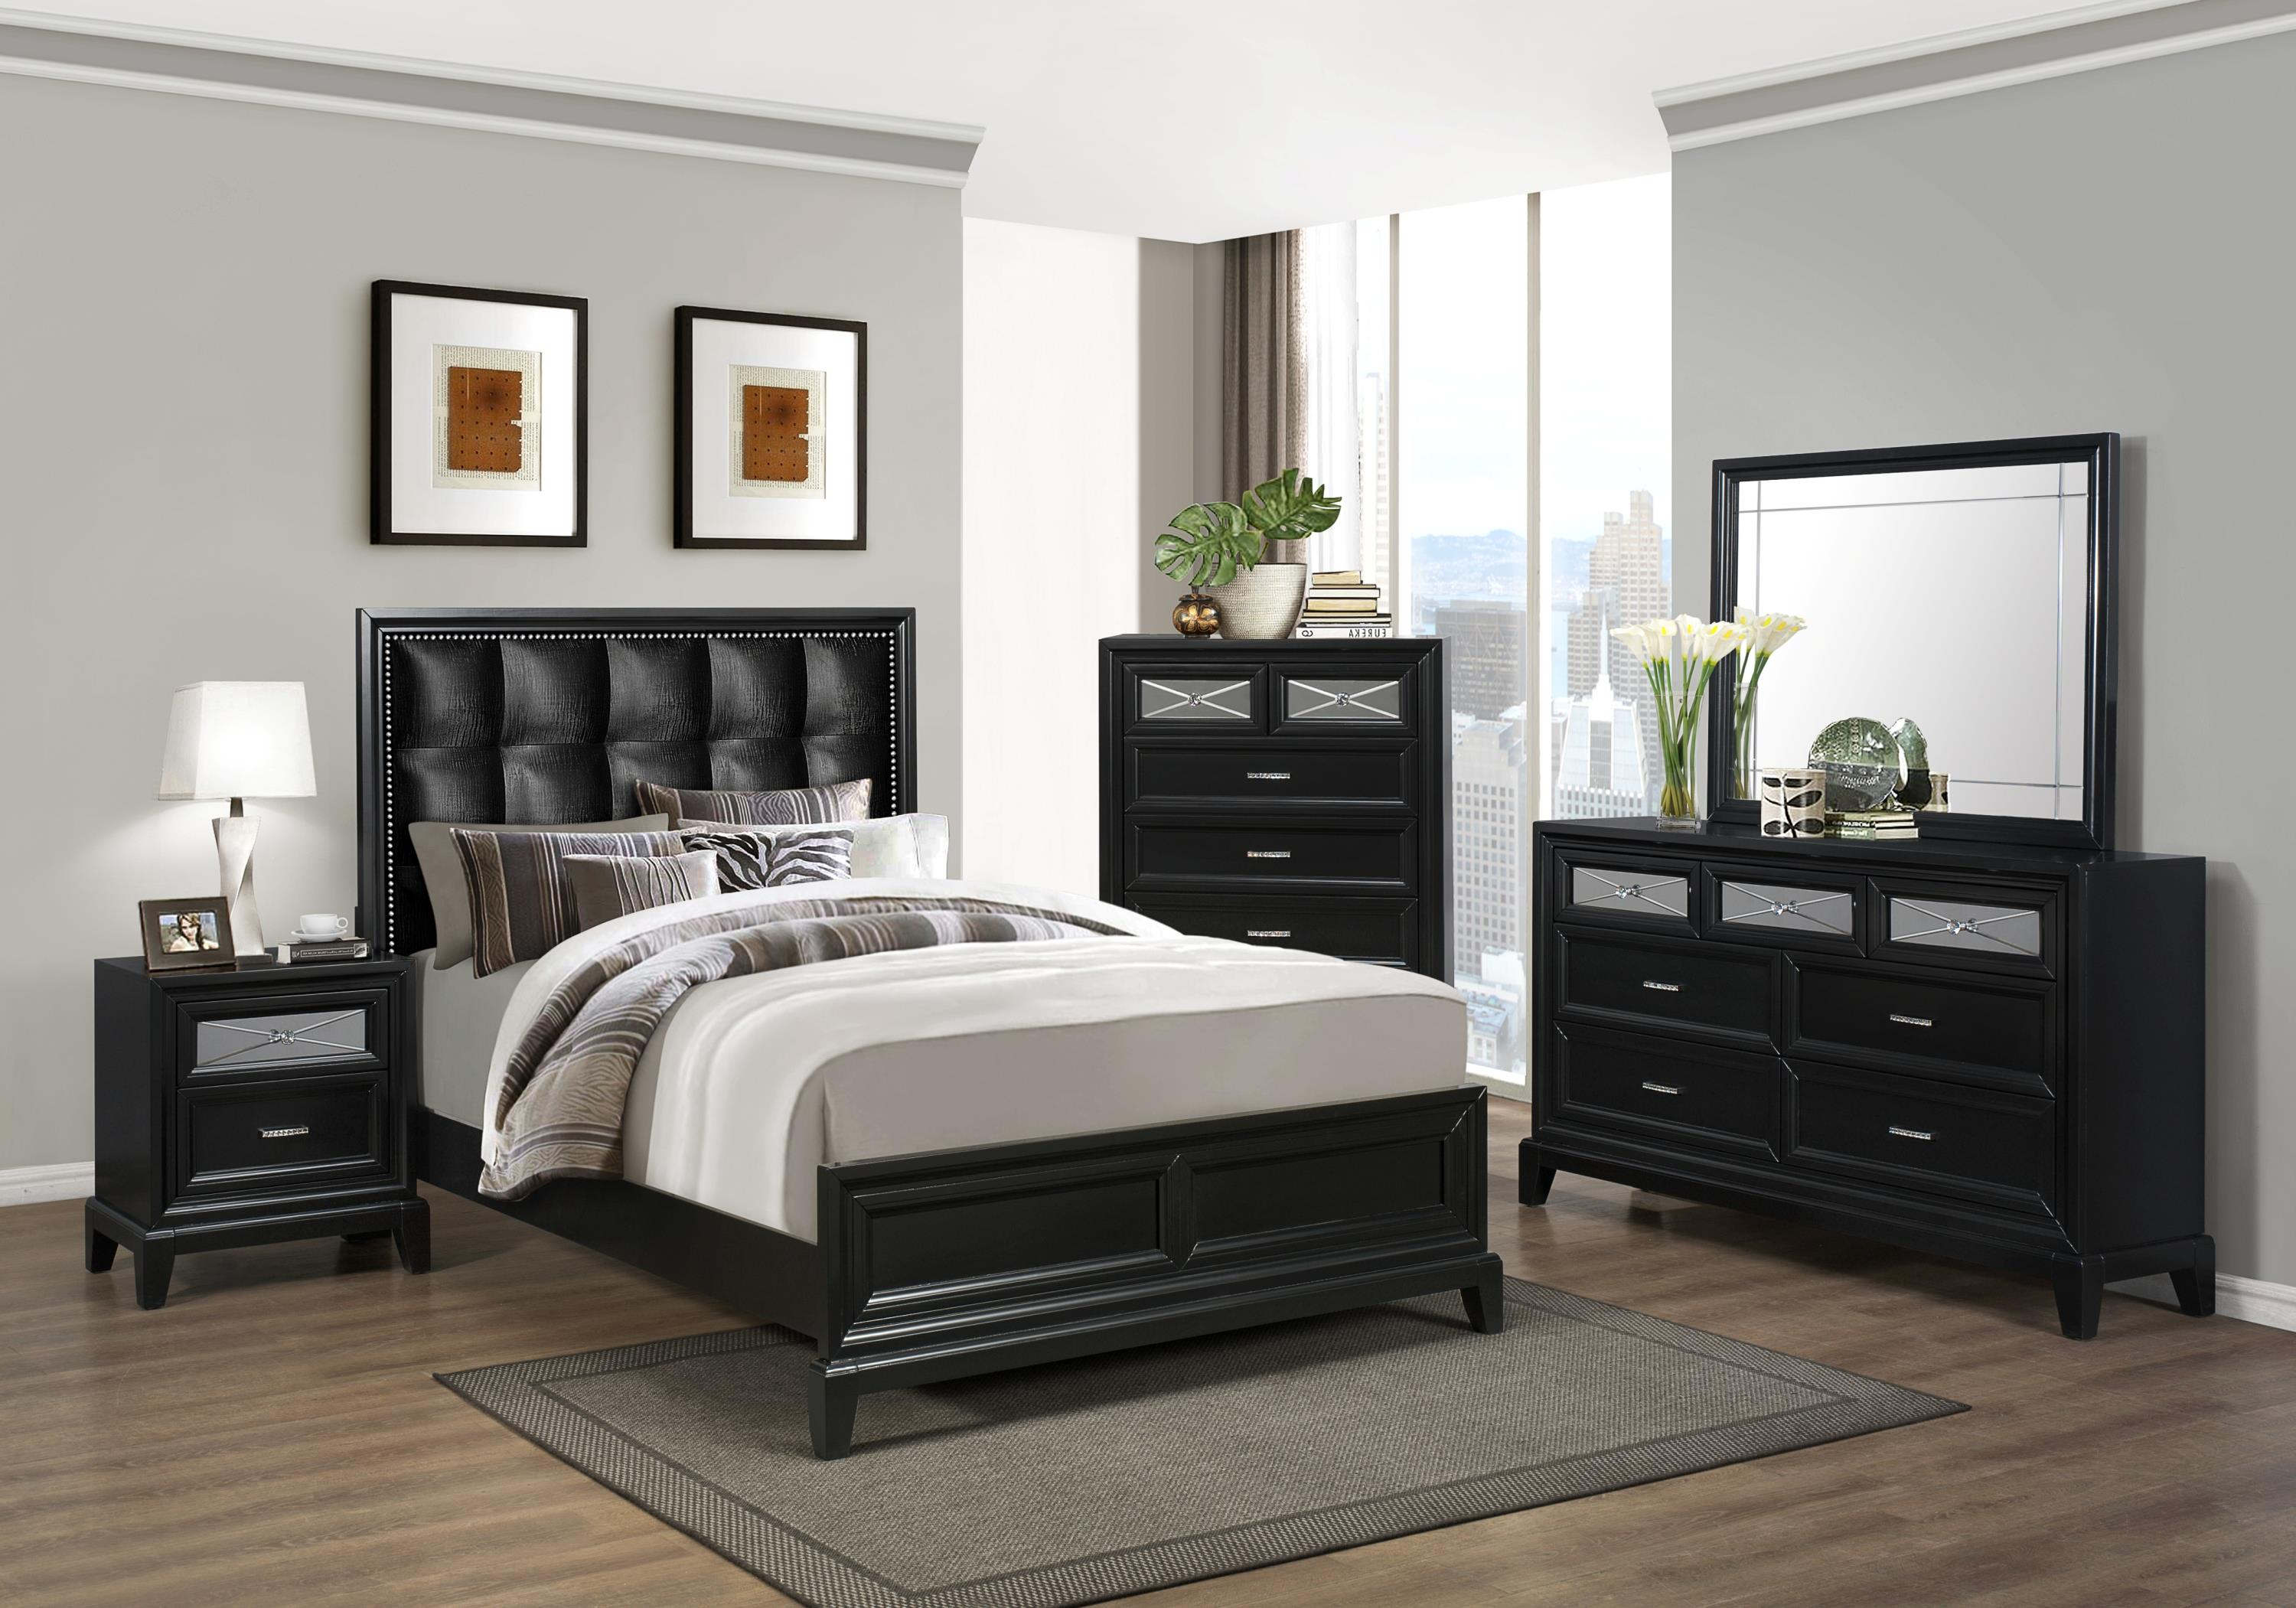 Crown Mark Elise King Bedroom Group - Item Number: B9380 K Bedroom Group 1